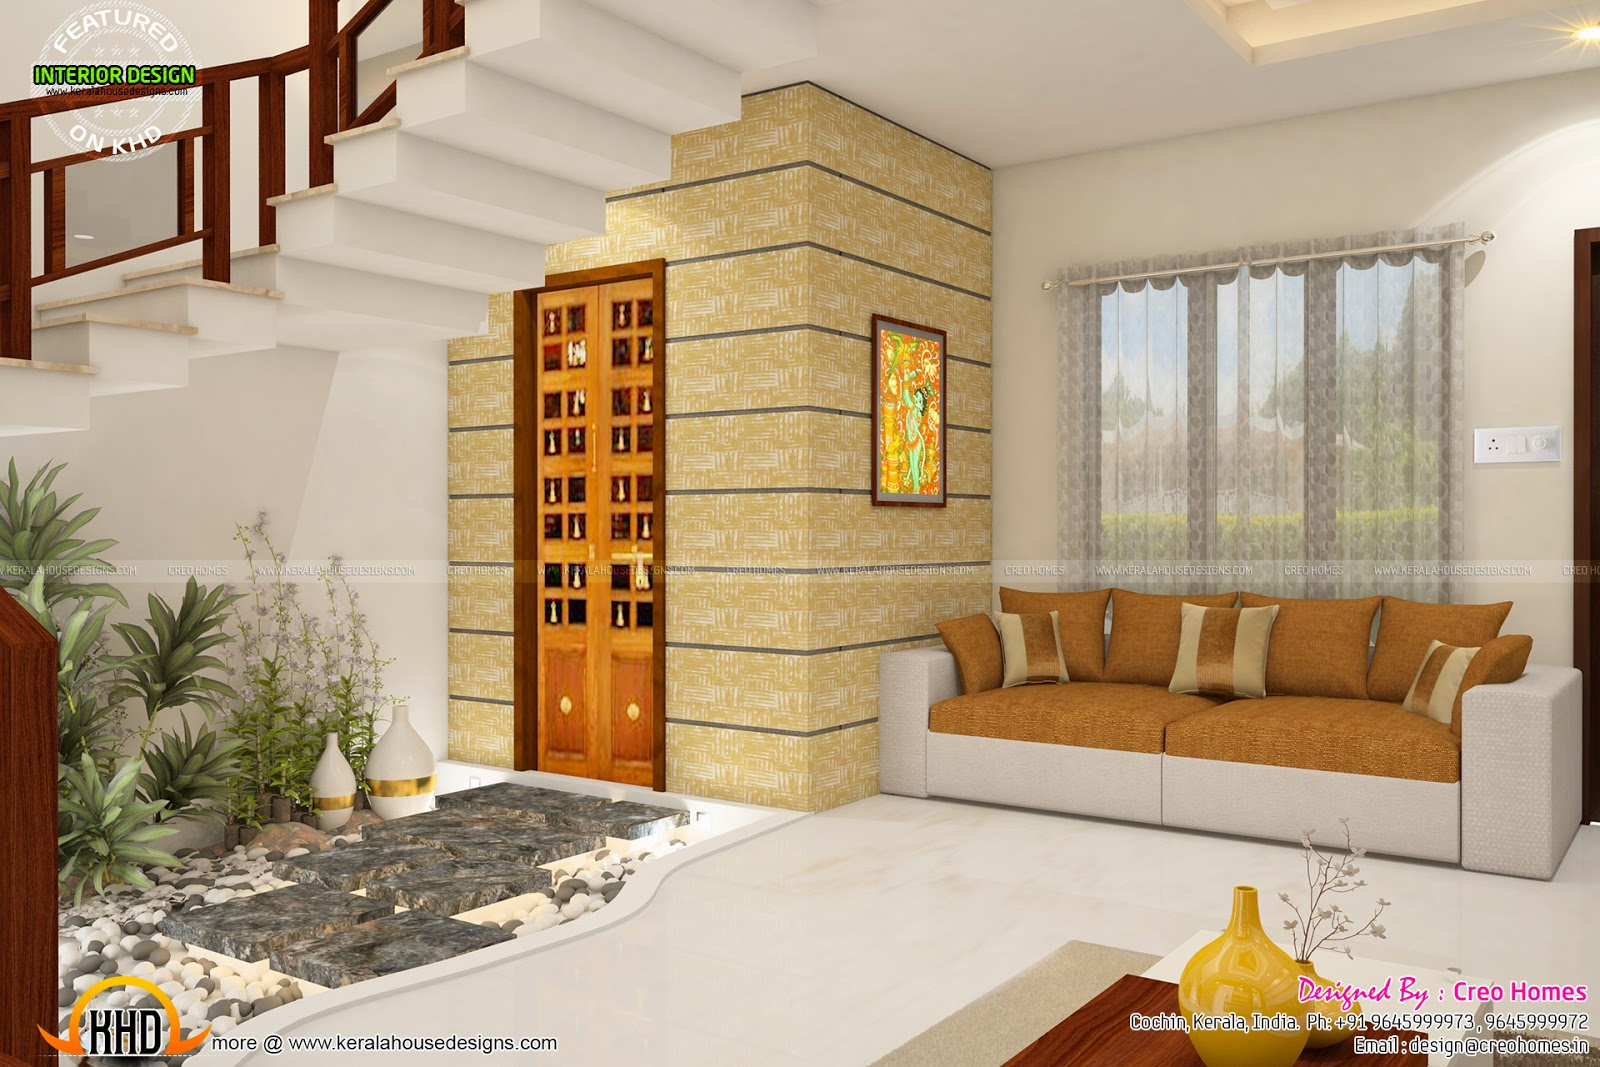 Total home interior solutions by creo homes kerala home for Home interior design photo gallery